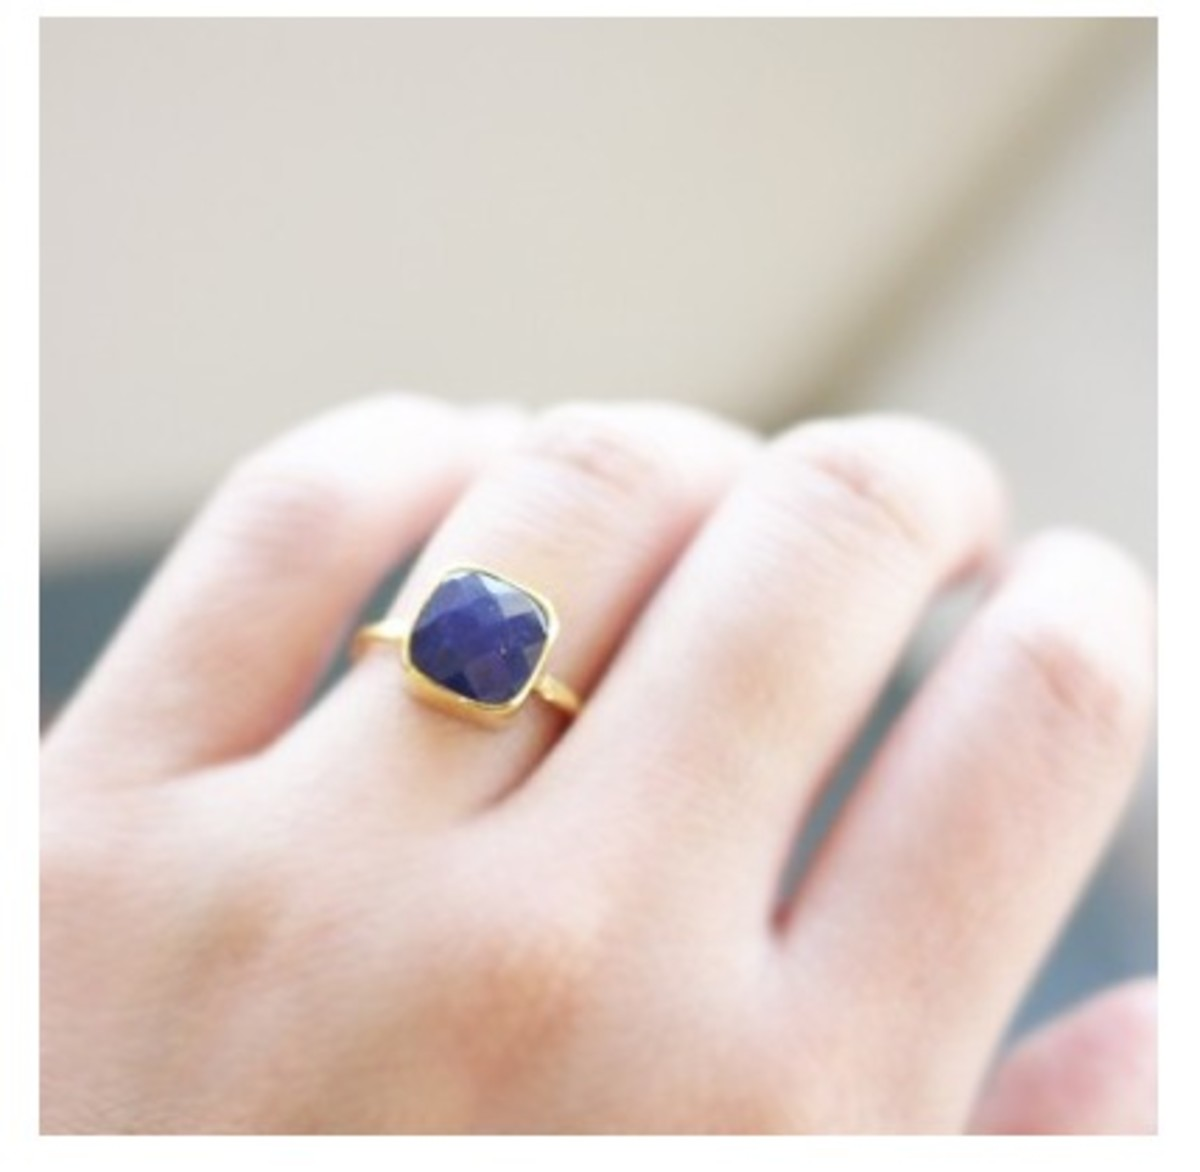 Square Sapphire Ring from Prismera